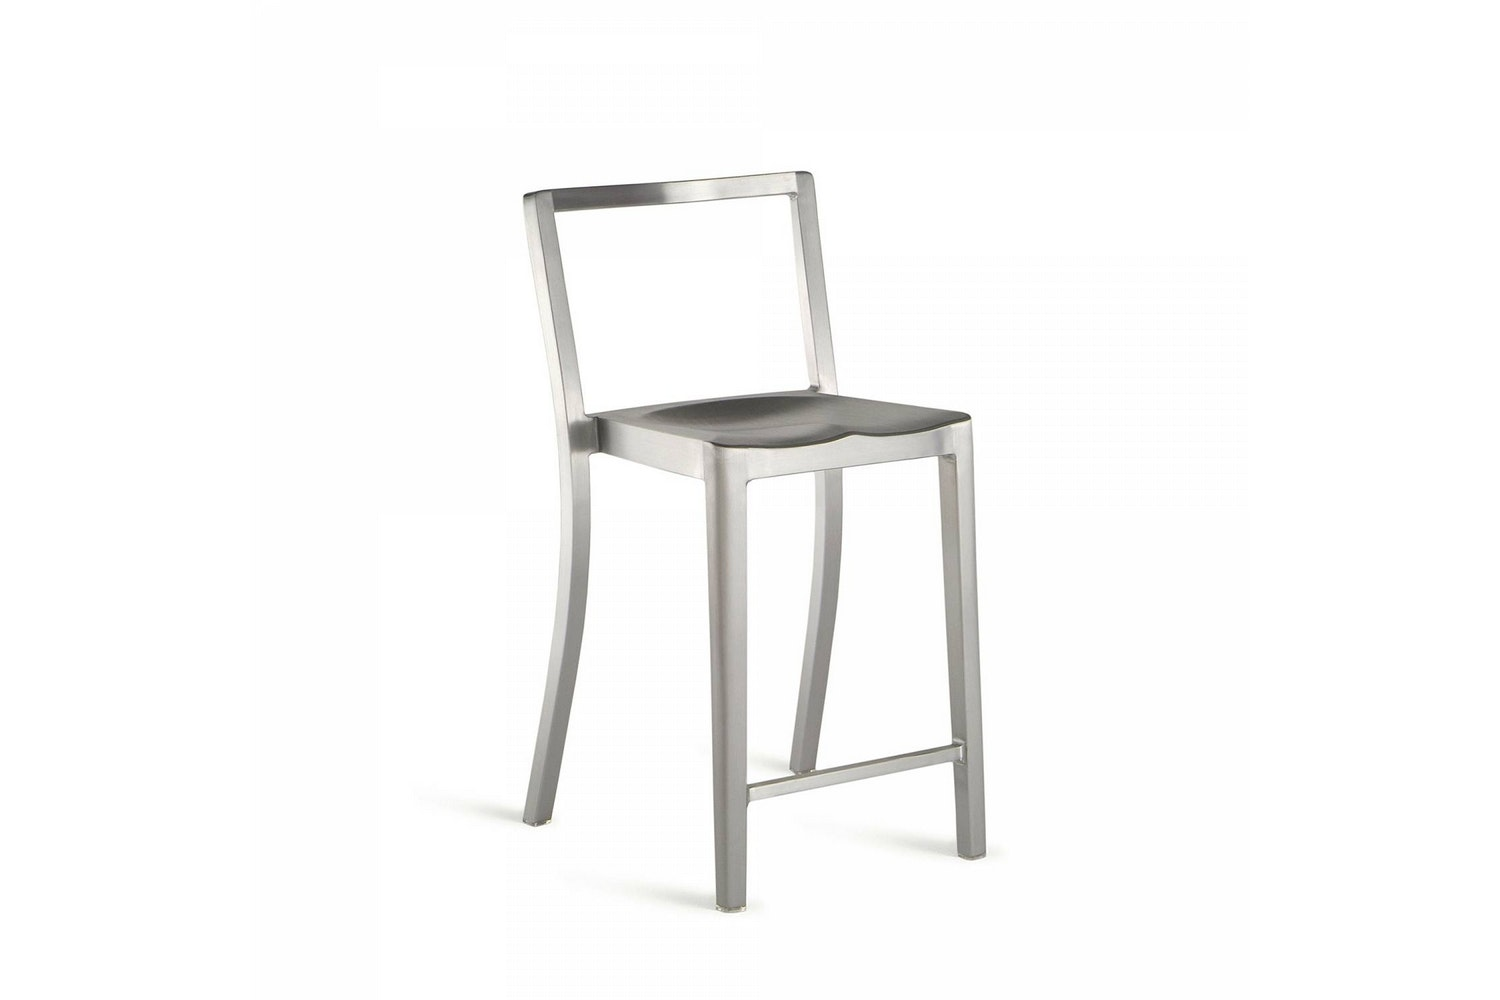 Icon Stool by Philippe Starck for Emeco